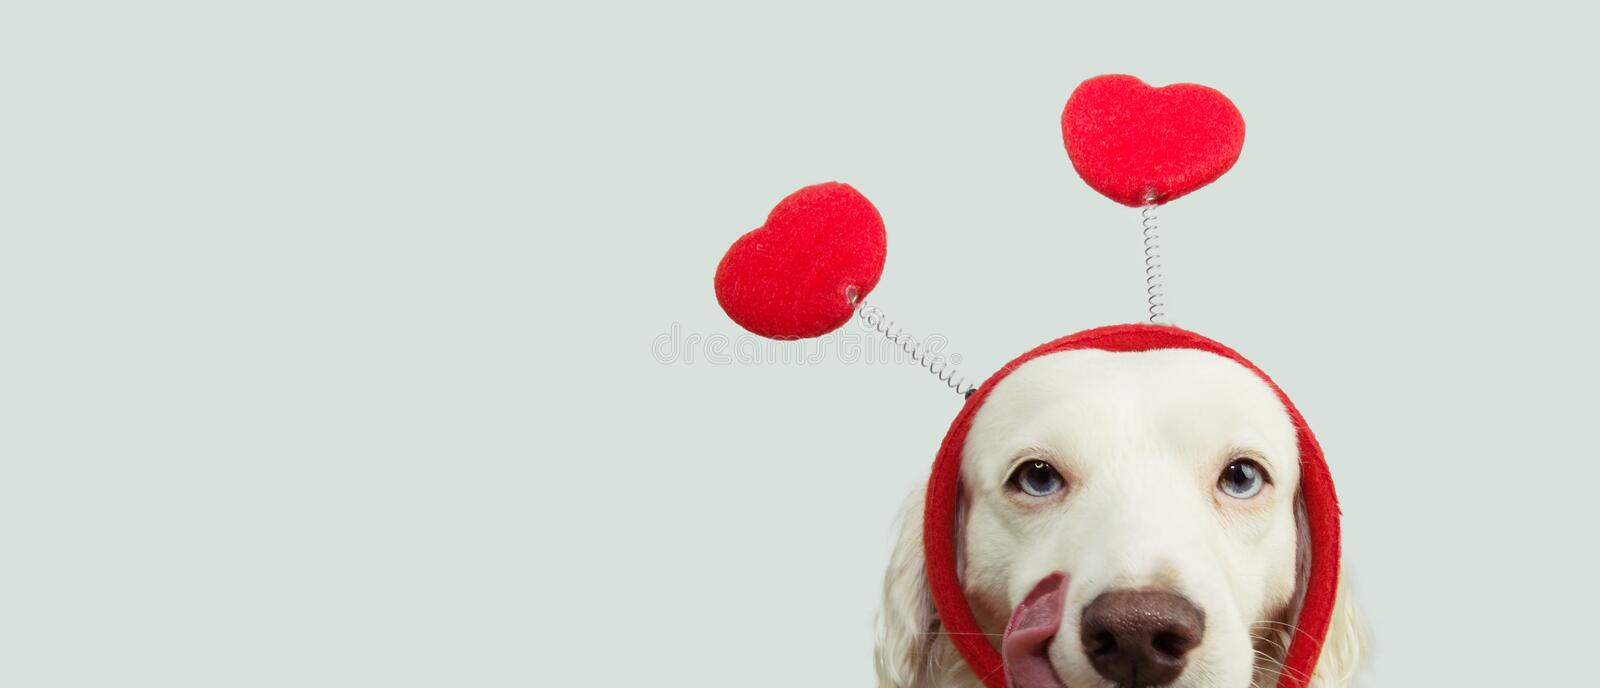 Dog in love for happy valentines day with red heart shape diadem and tongue linking its nose. isolated on gray background stock photo